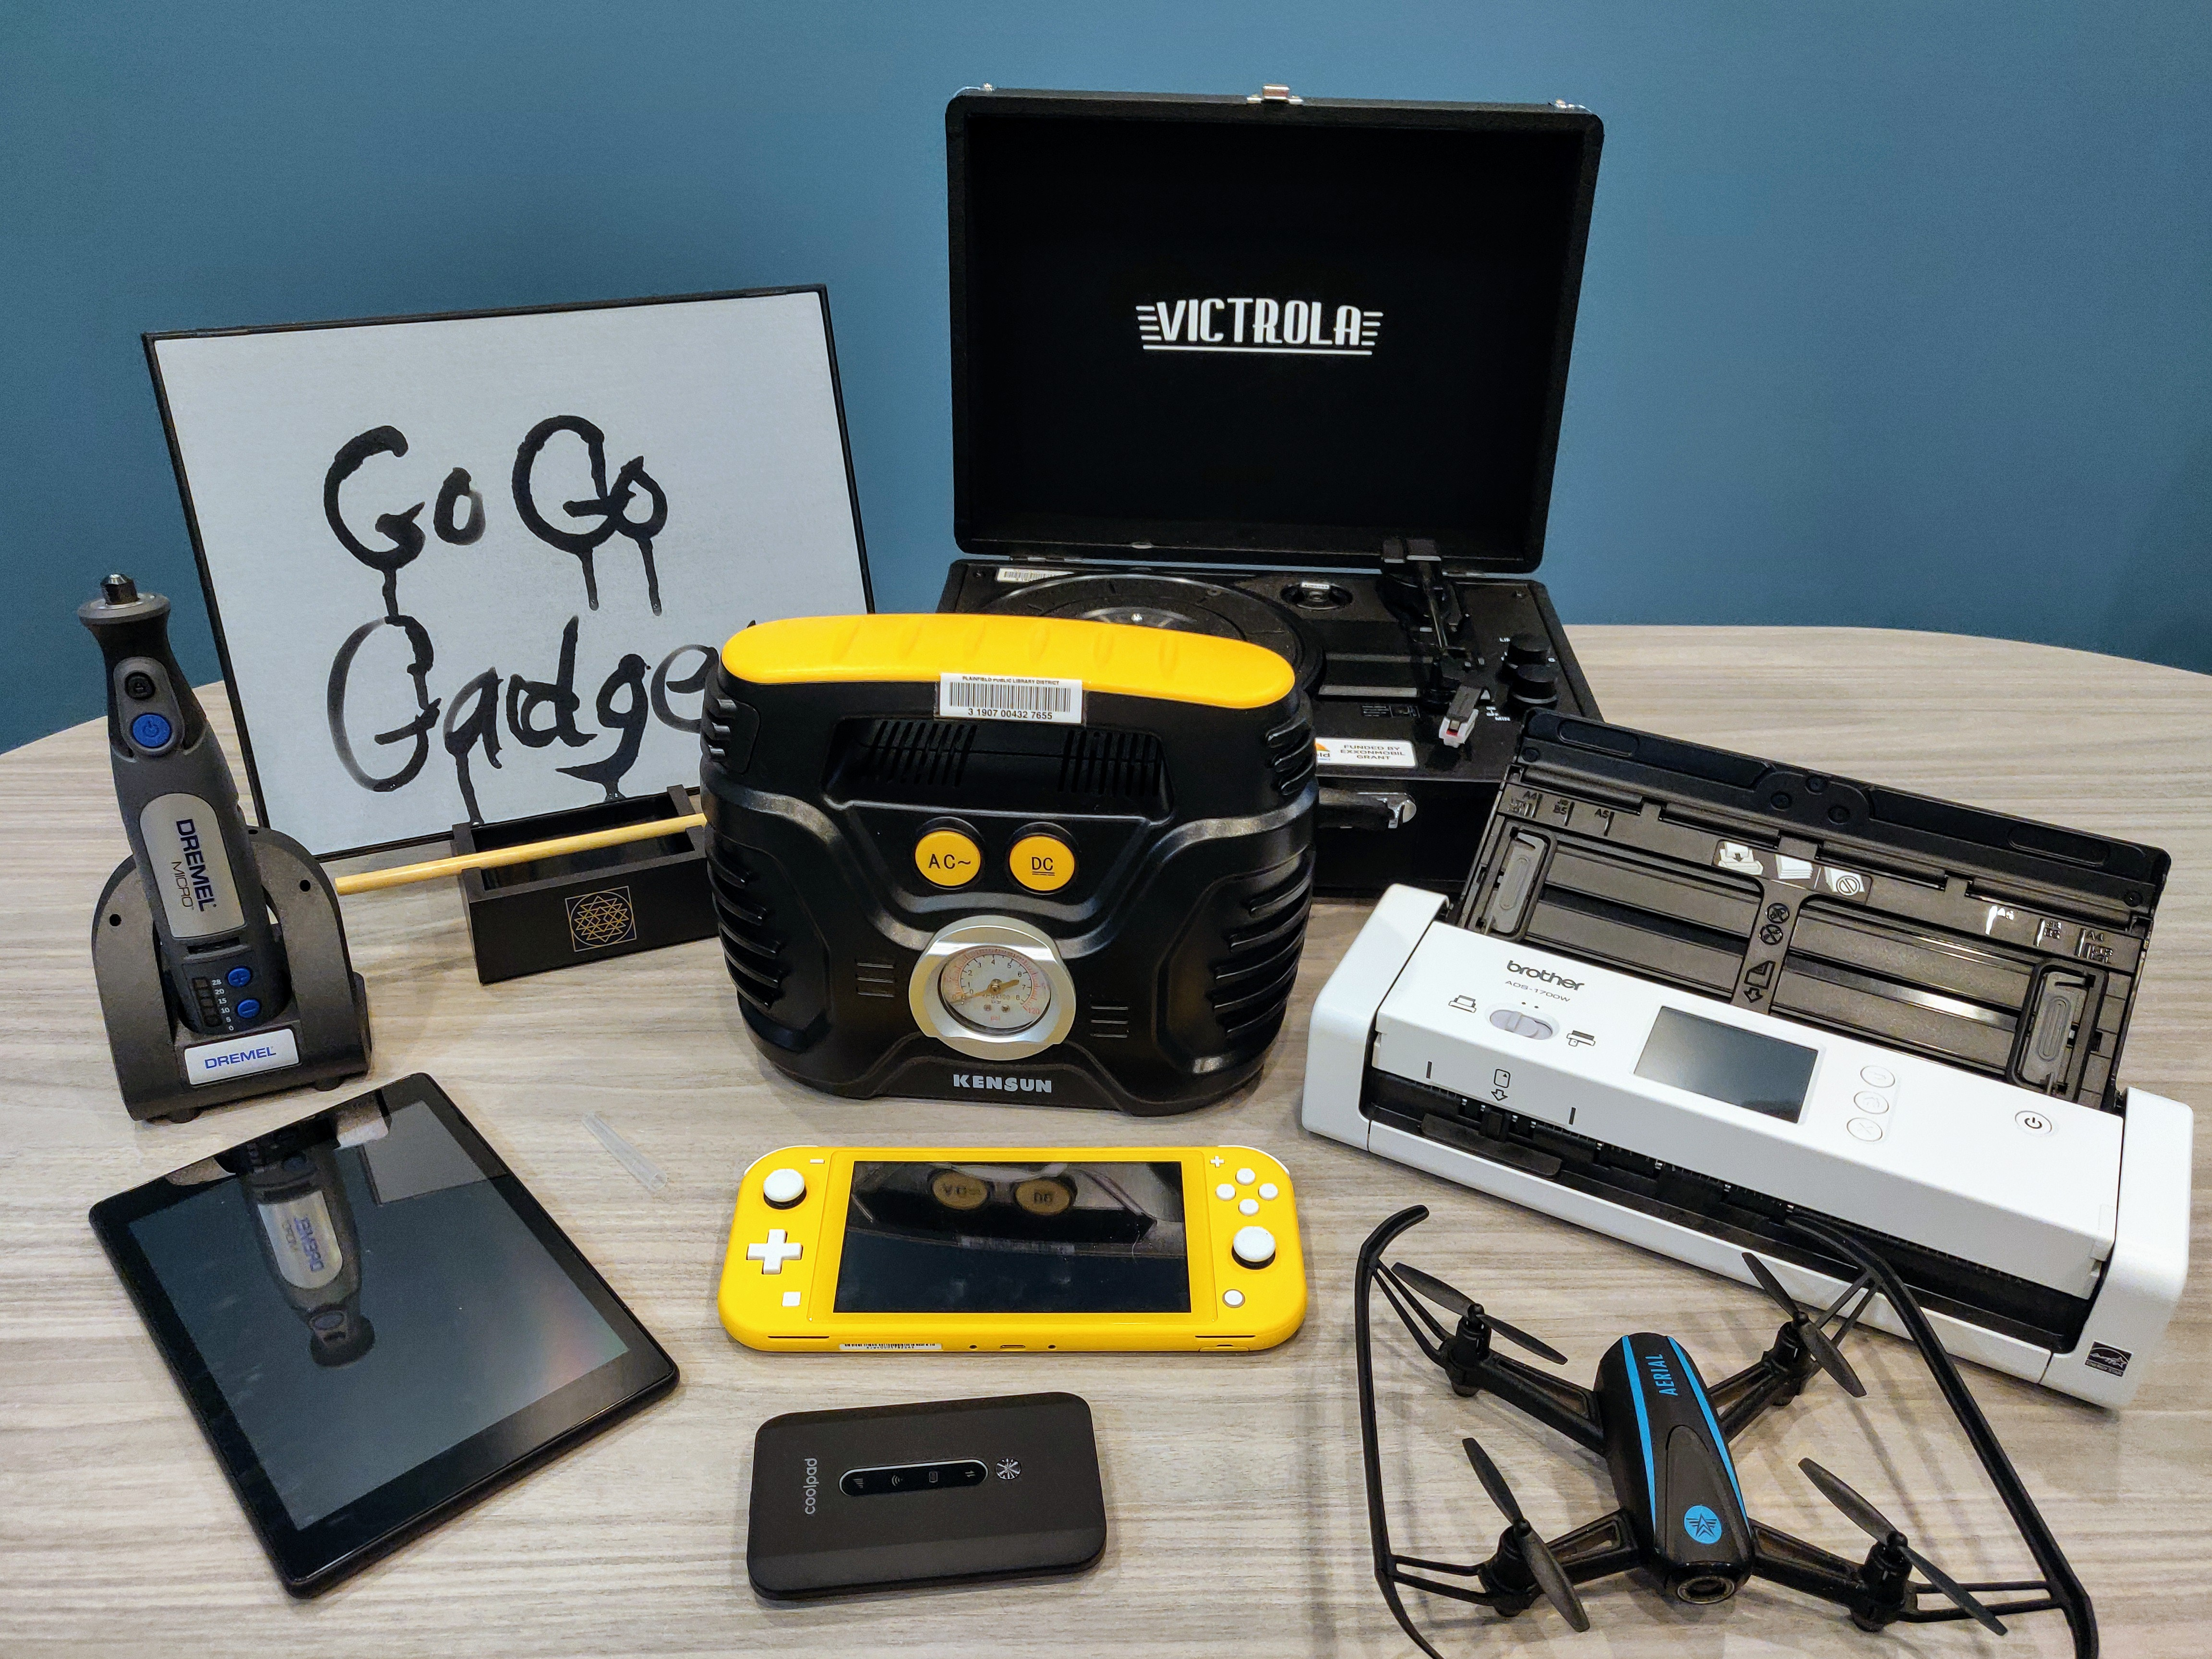 Library's GoGo Gadget collection